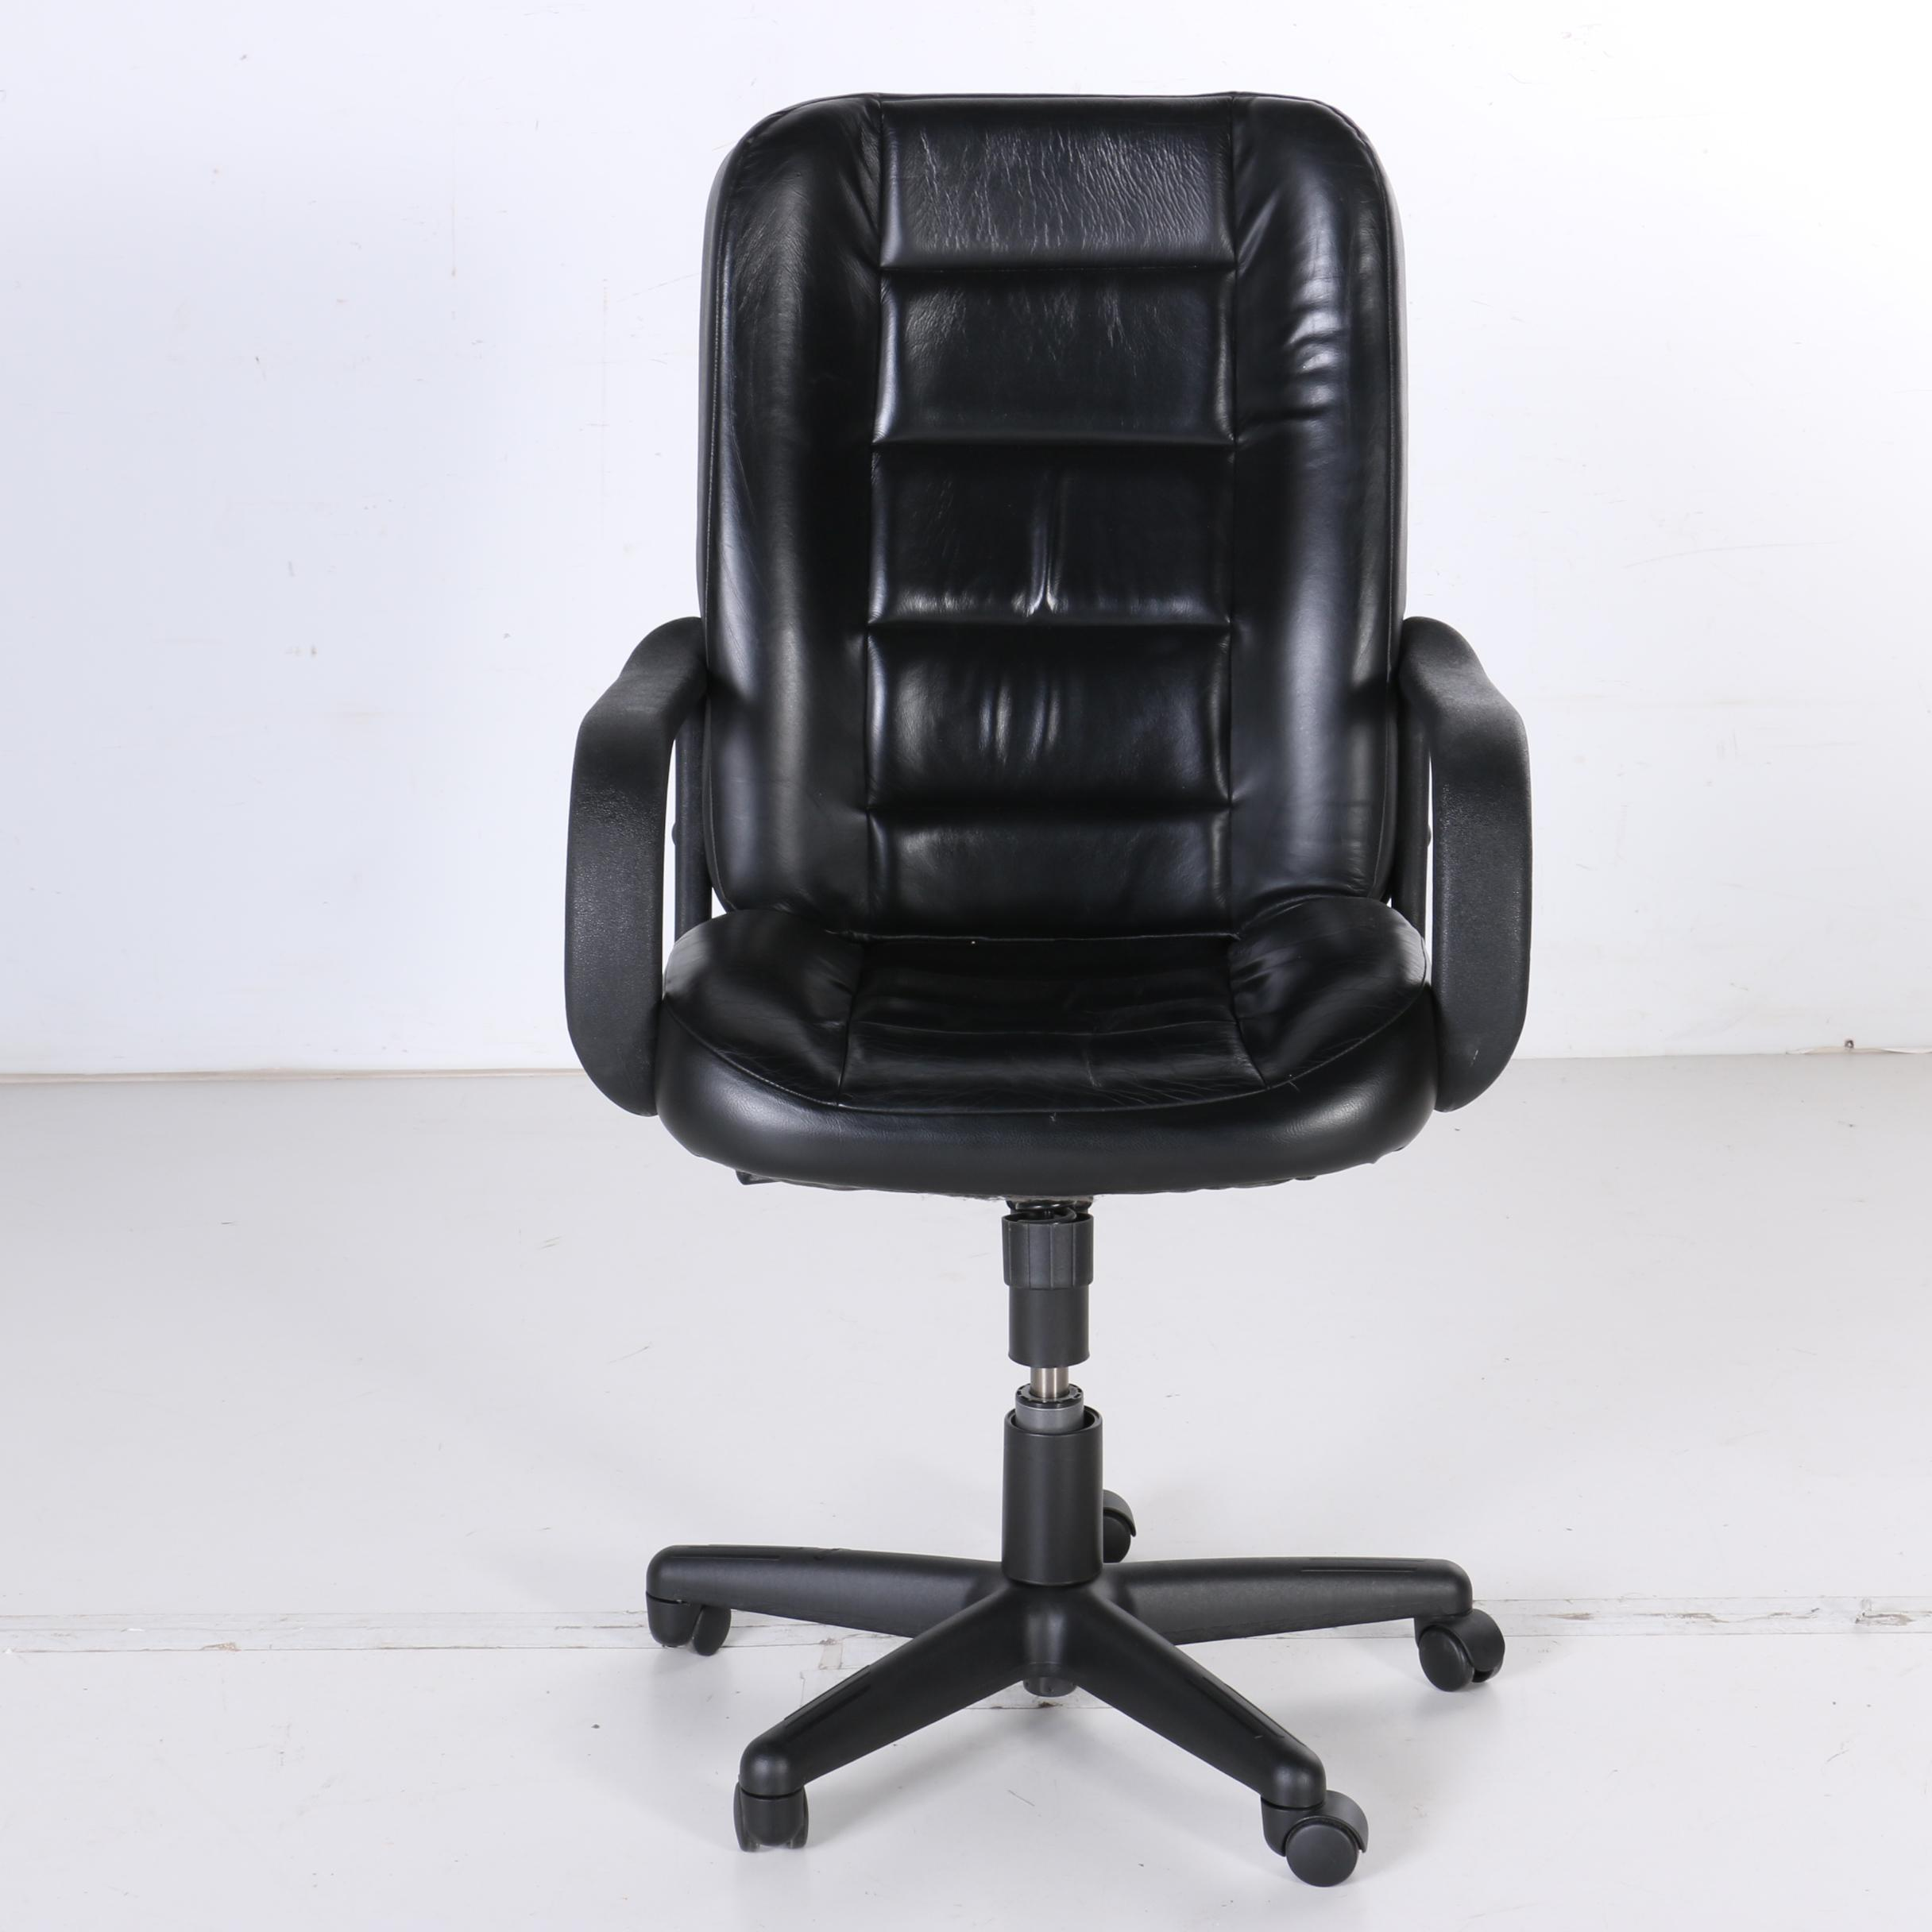 globe office chairs. Globe Furniture Office Chair Globe Office Chairs